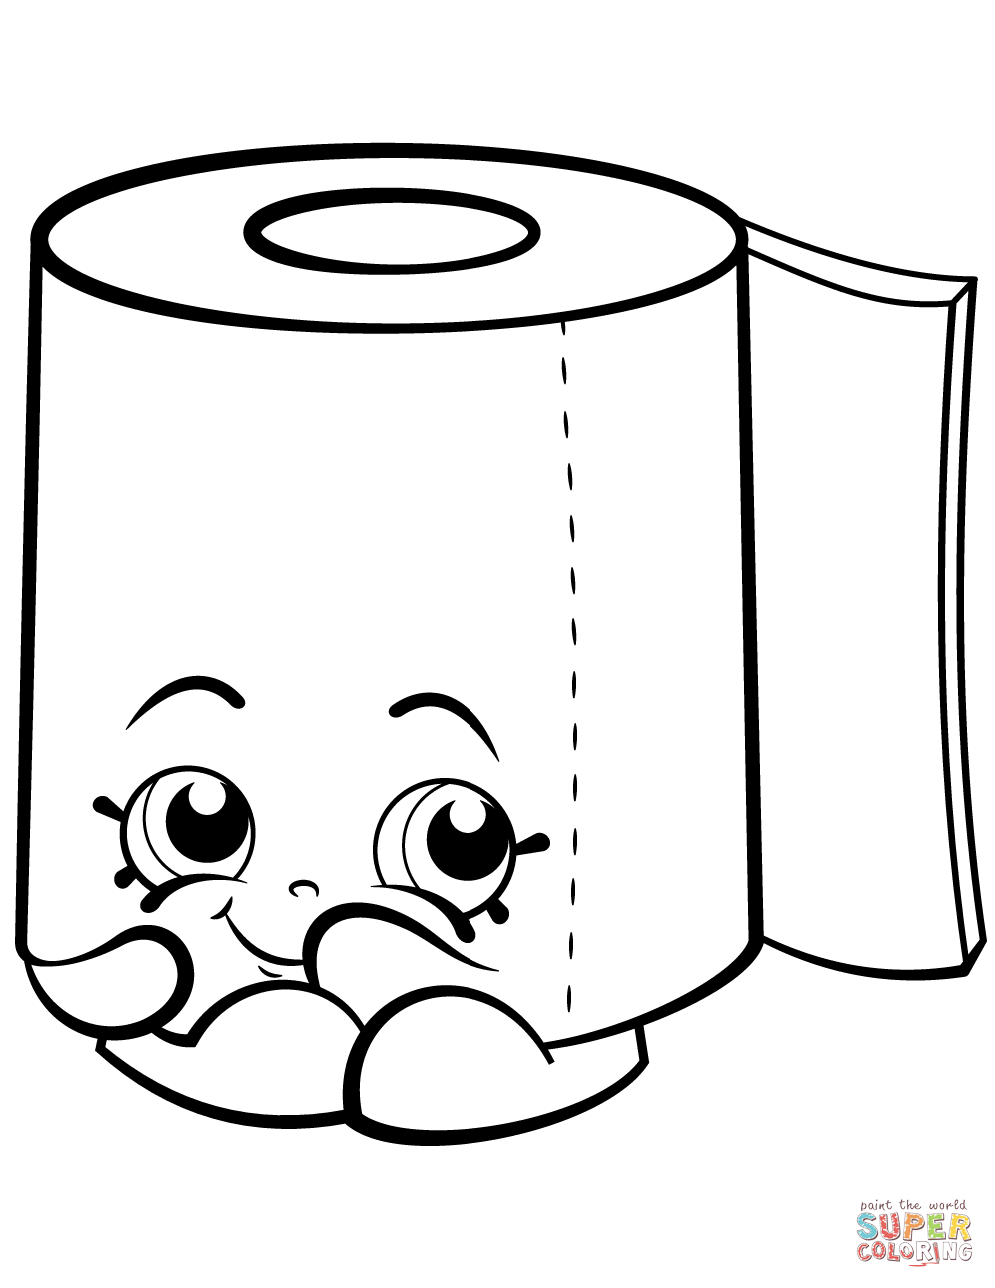 995x1288 Sweat Leafy Roll Of Toilet Paper Shopkin Coloring Page Free